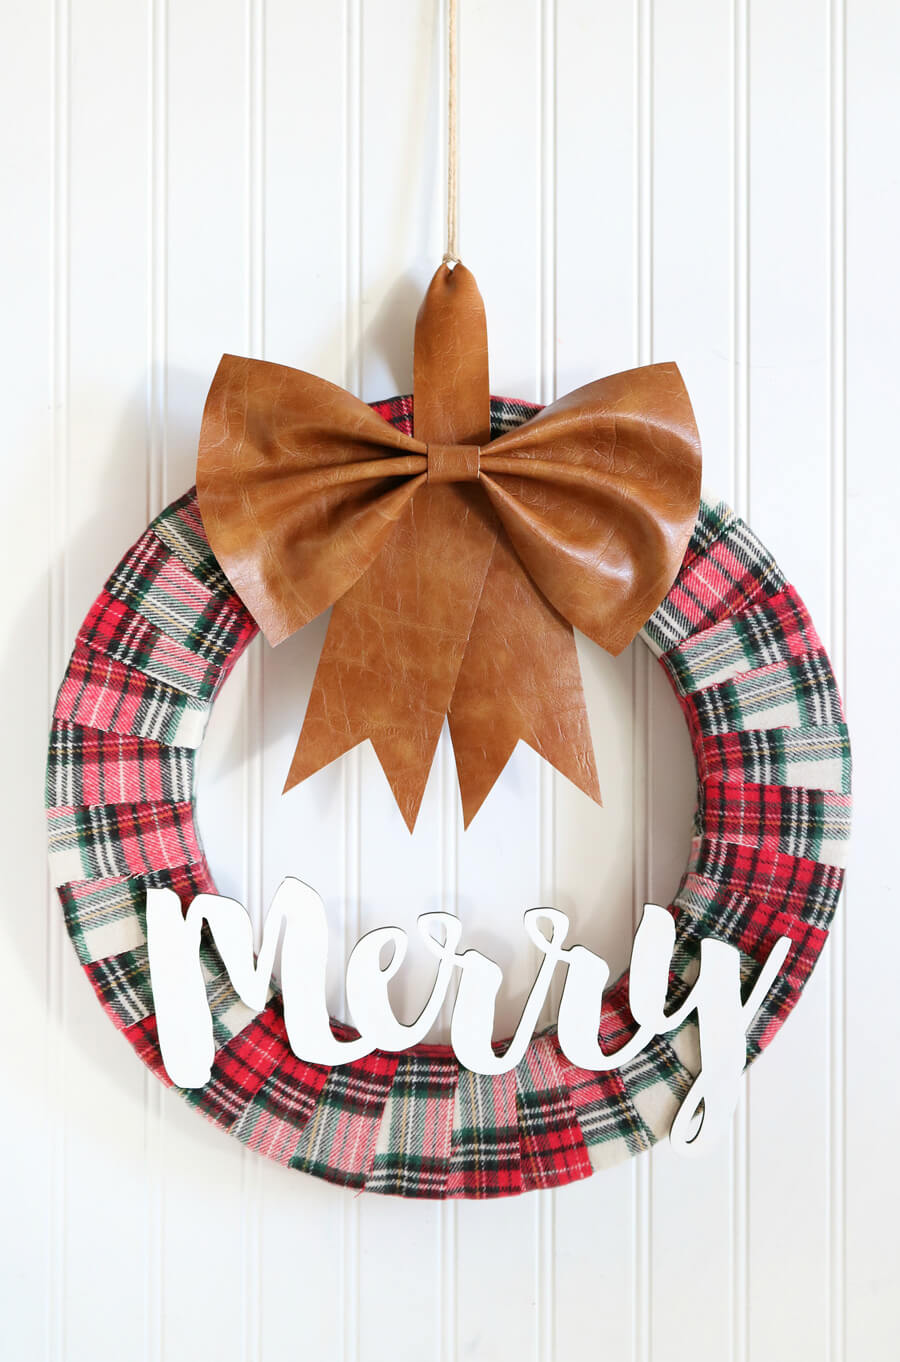 plaid and leather wreath